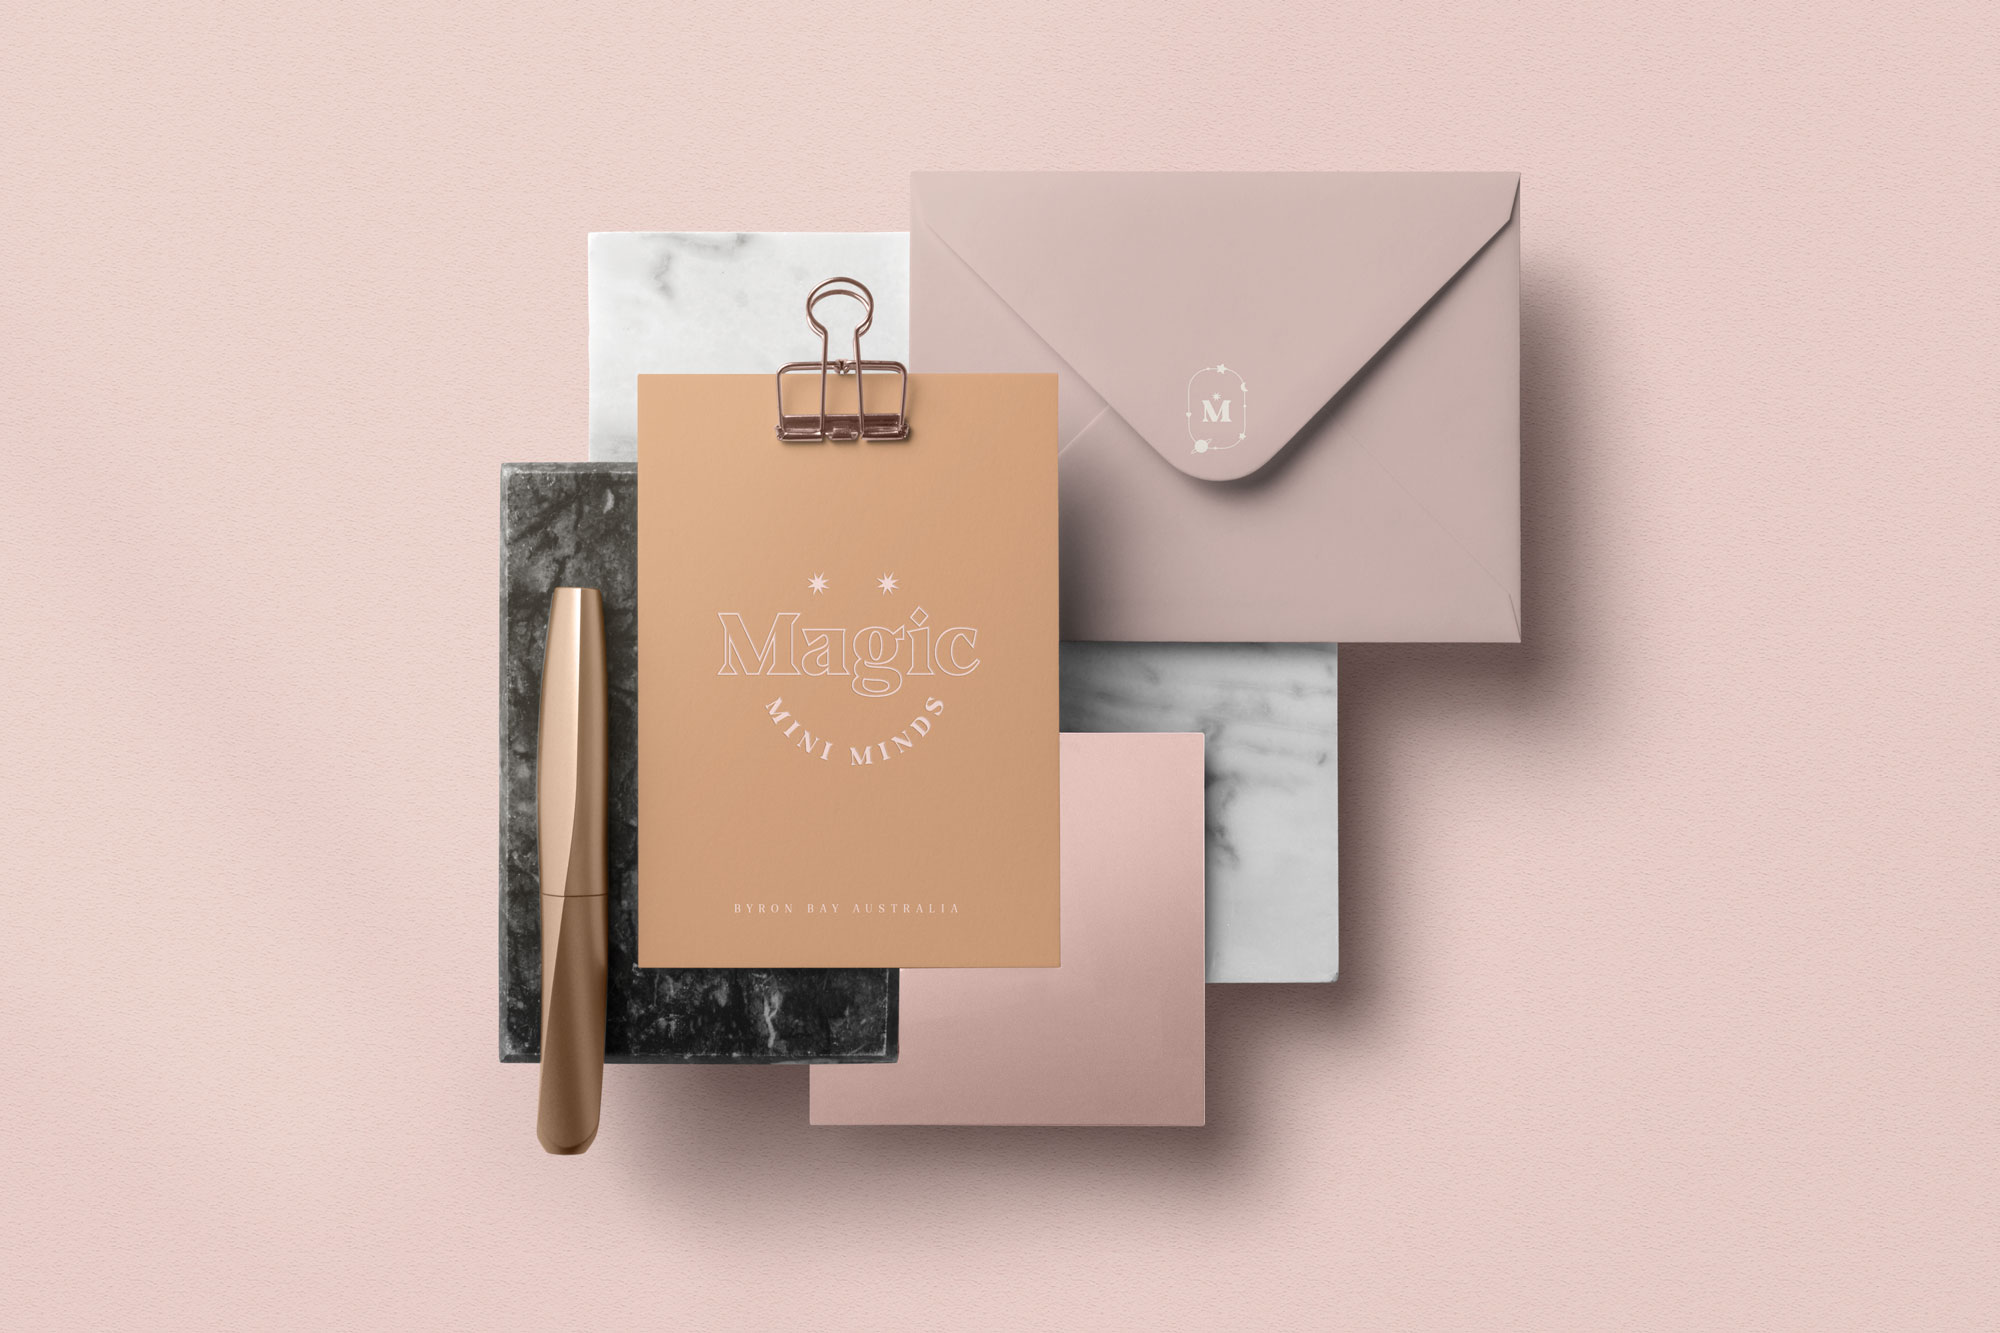 Magic Mini Minds stationery